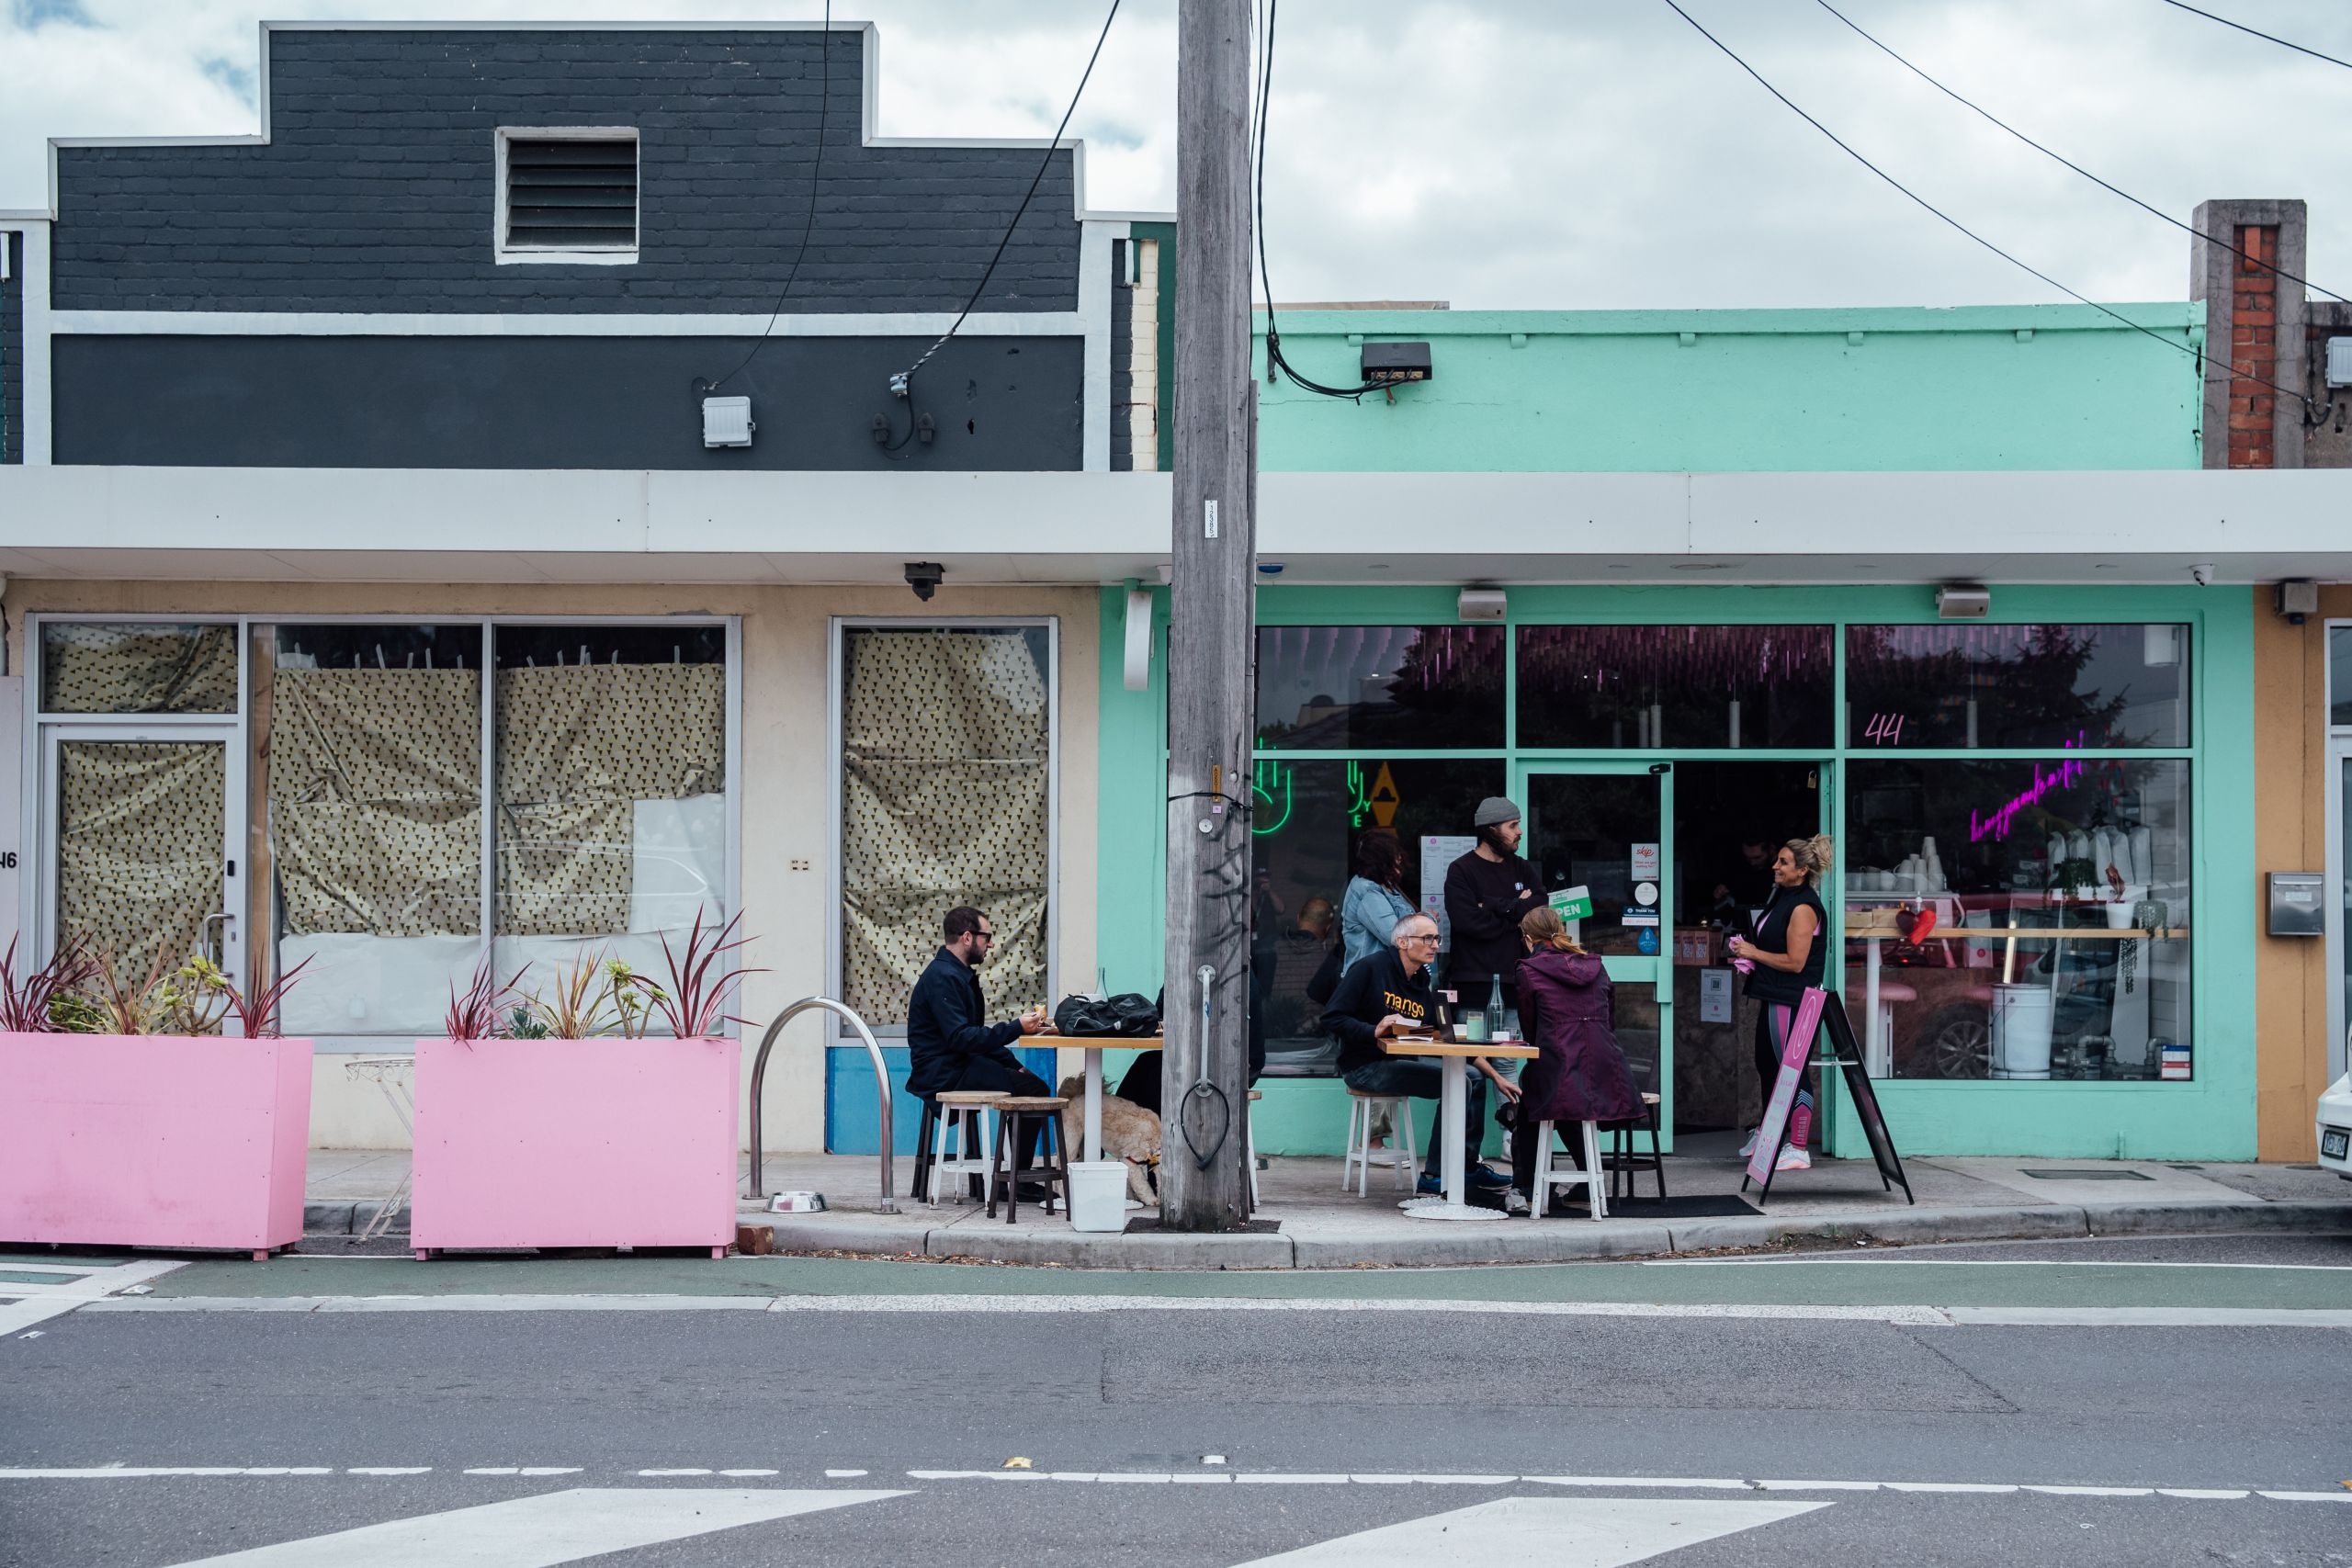 An exterior of a cafe. The awning is mint green and there is a pale pink planter box on the street. People sit outside the cafe chatting and eating.